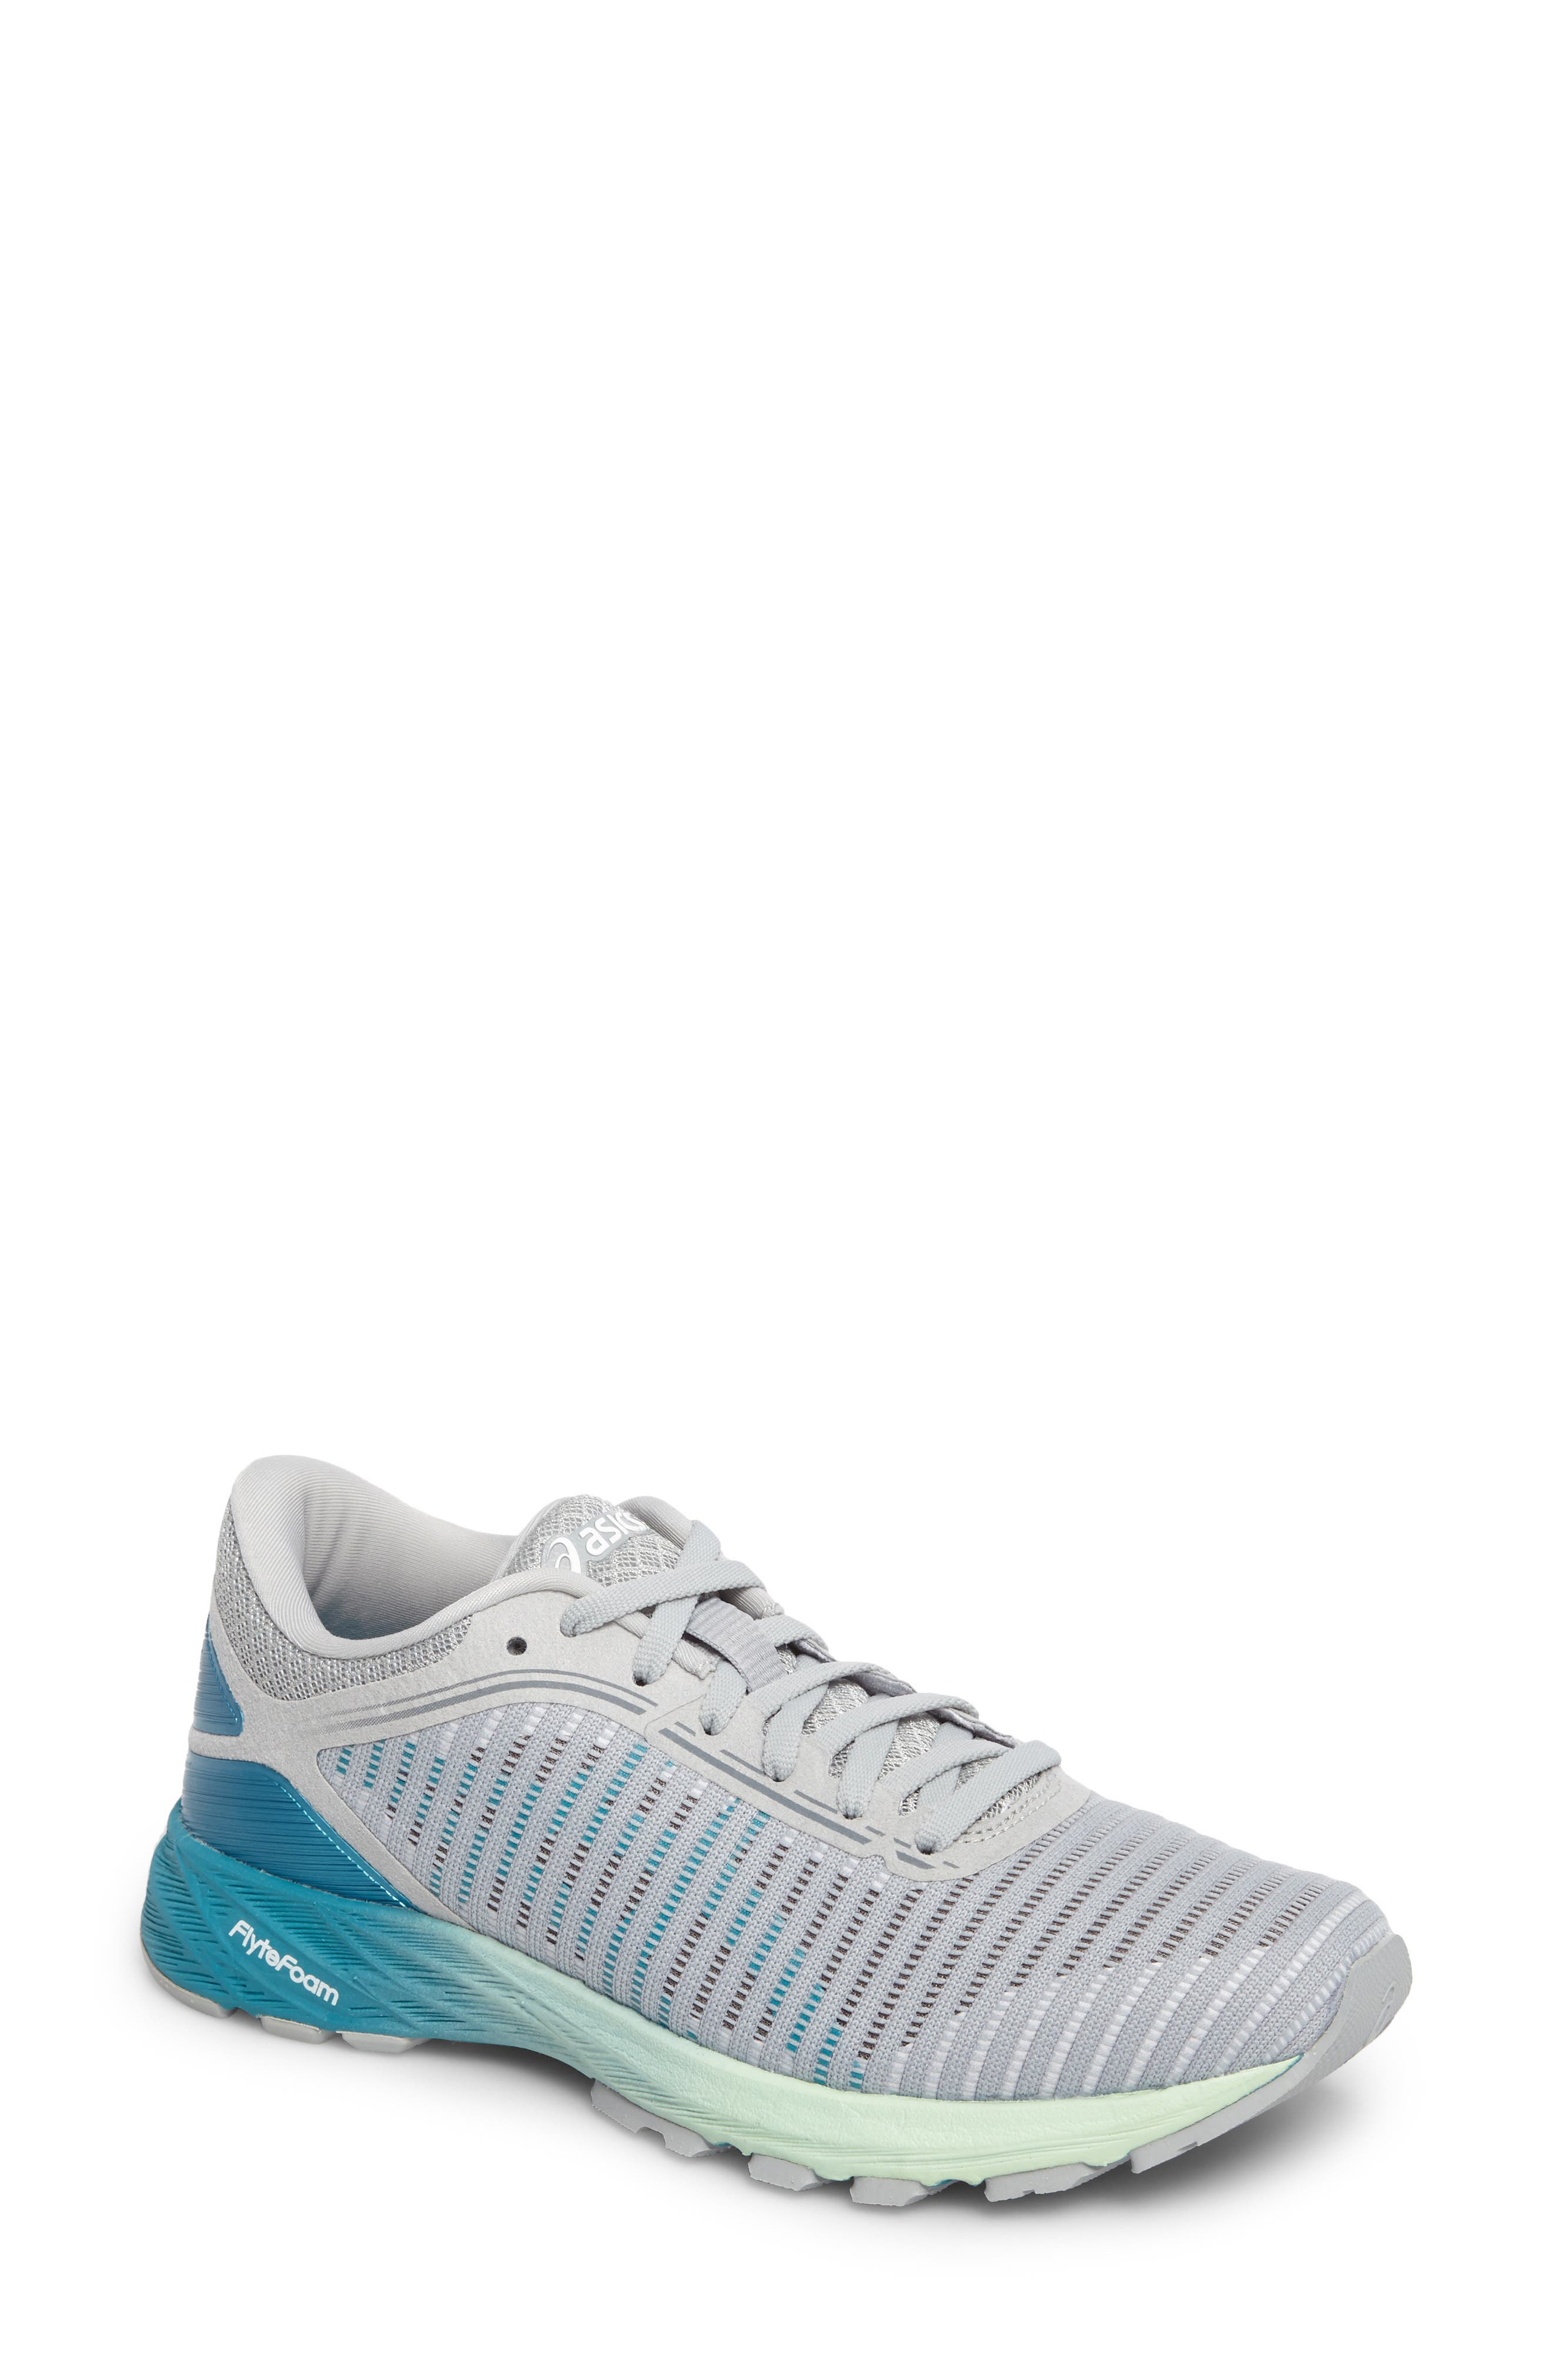 DynaFlyte 2 Running Shoe,                             Main thumbnail 1, color,                             MID GREY/ AQUA/ GLACIER